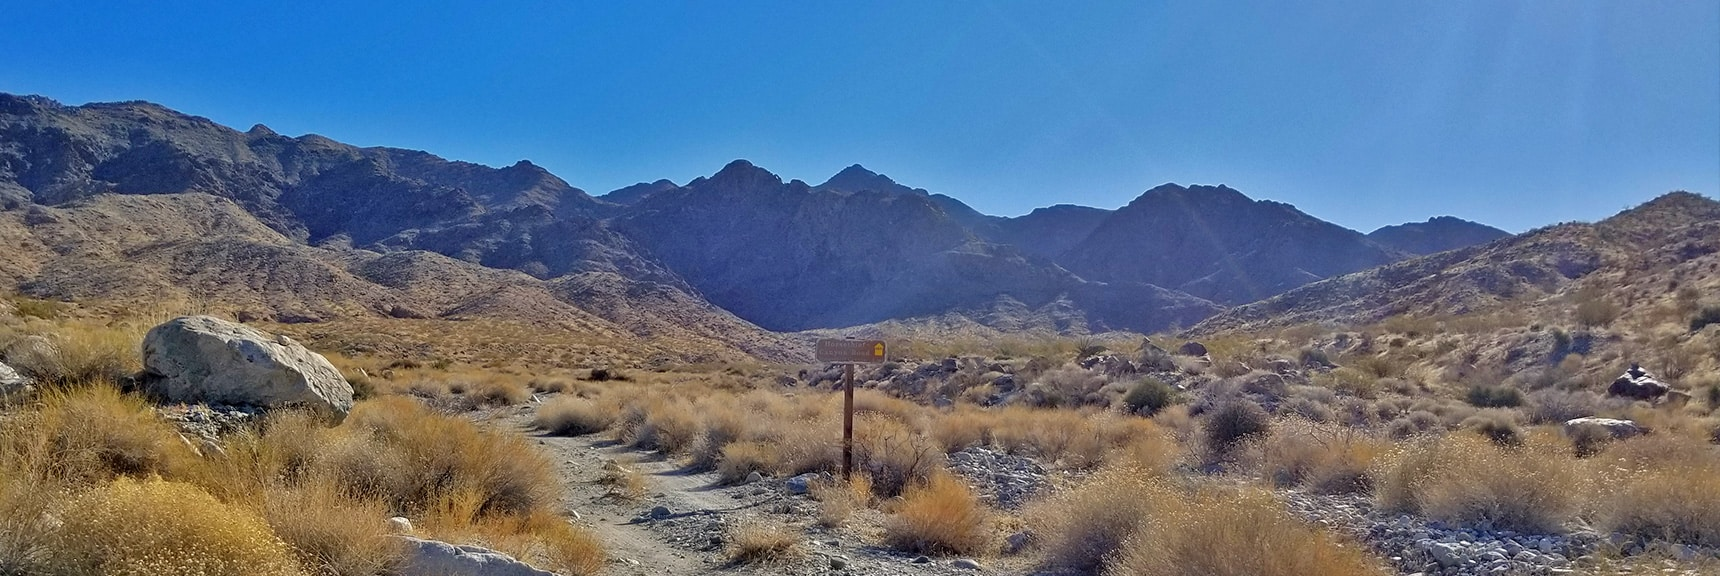 Closing In on the Upper End of Horse Thief Canyon Road | Mt Wilson, Black Mountains, Arizona, Lake Mead National Recreation Area